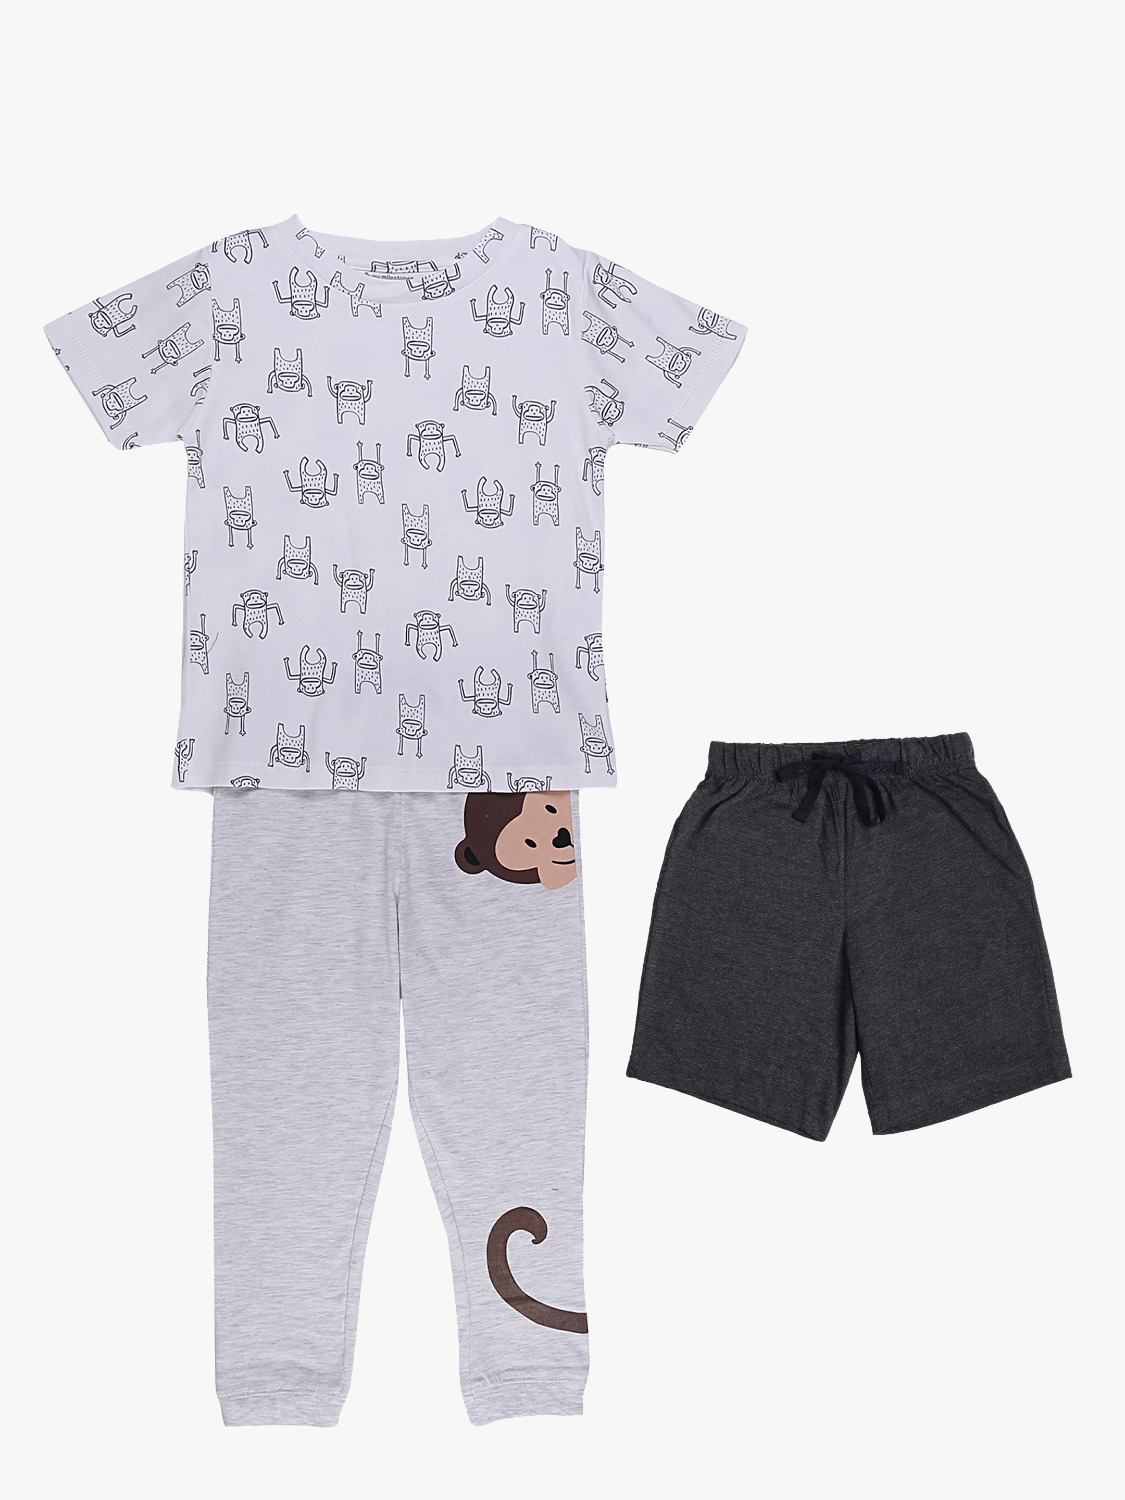 My Milestones Boys 3pcs Lounge Set - Monkey Grey/White